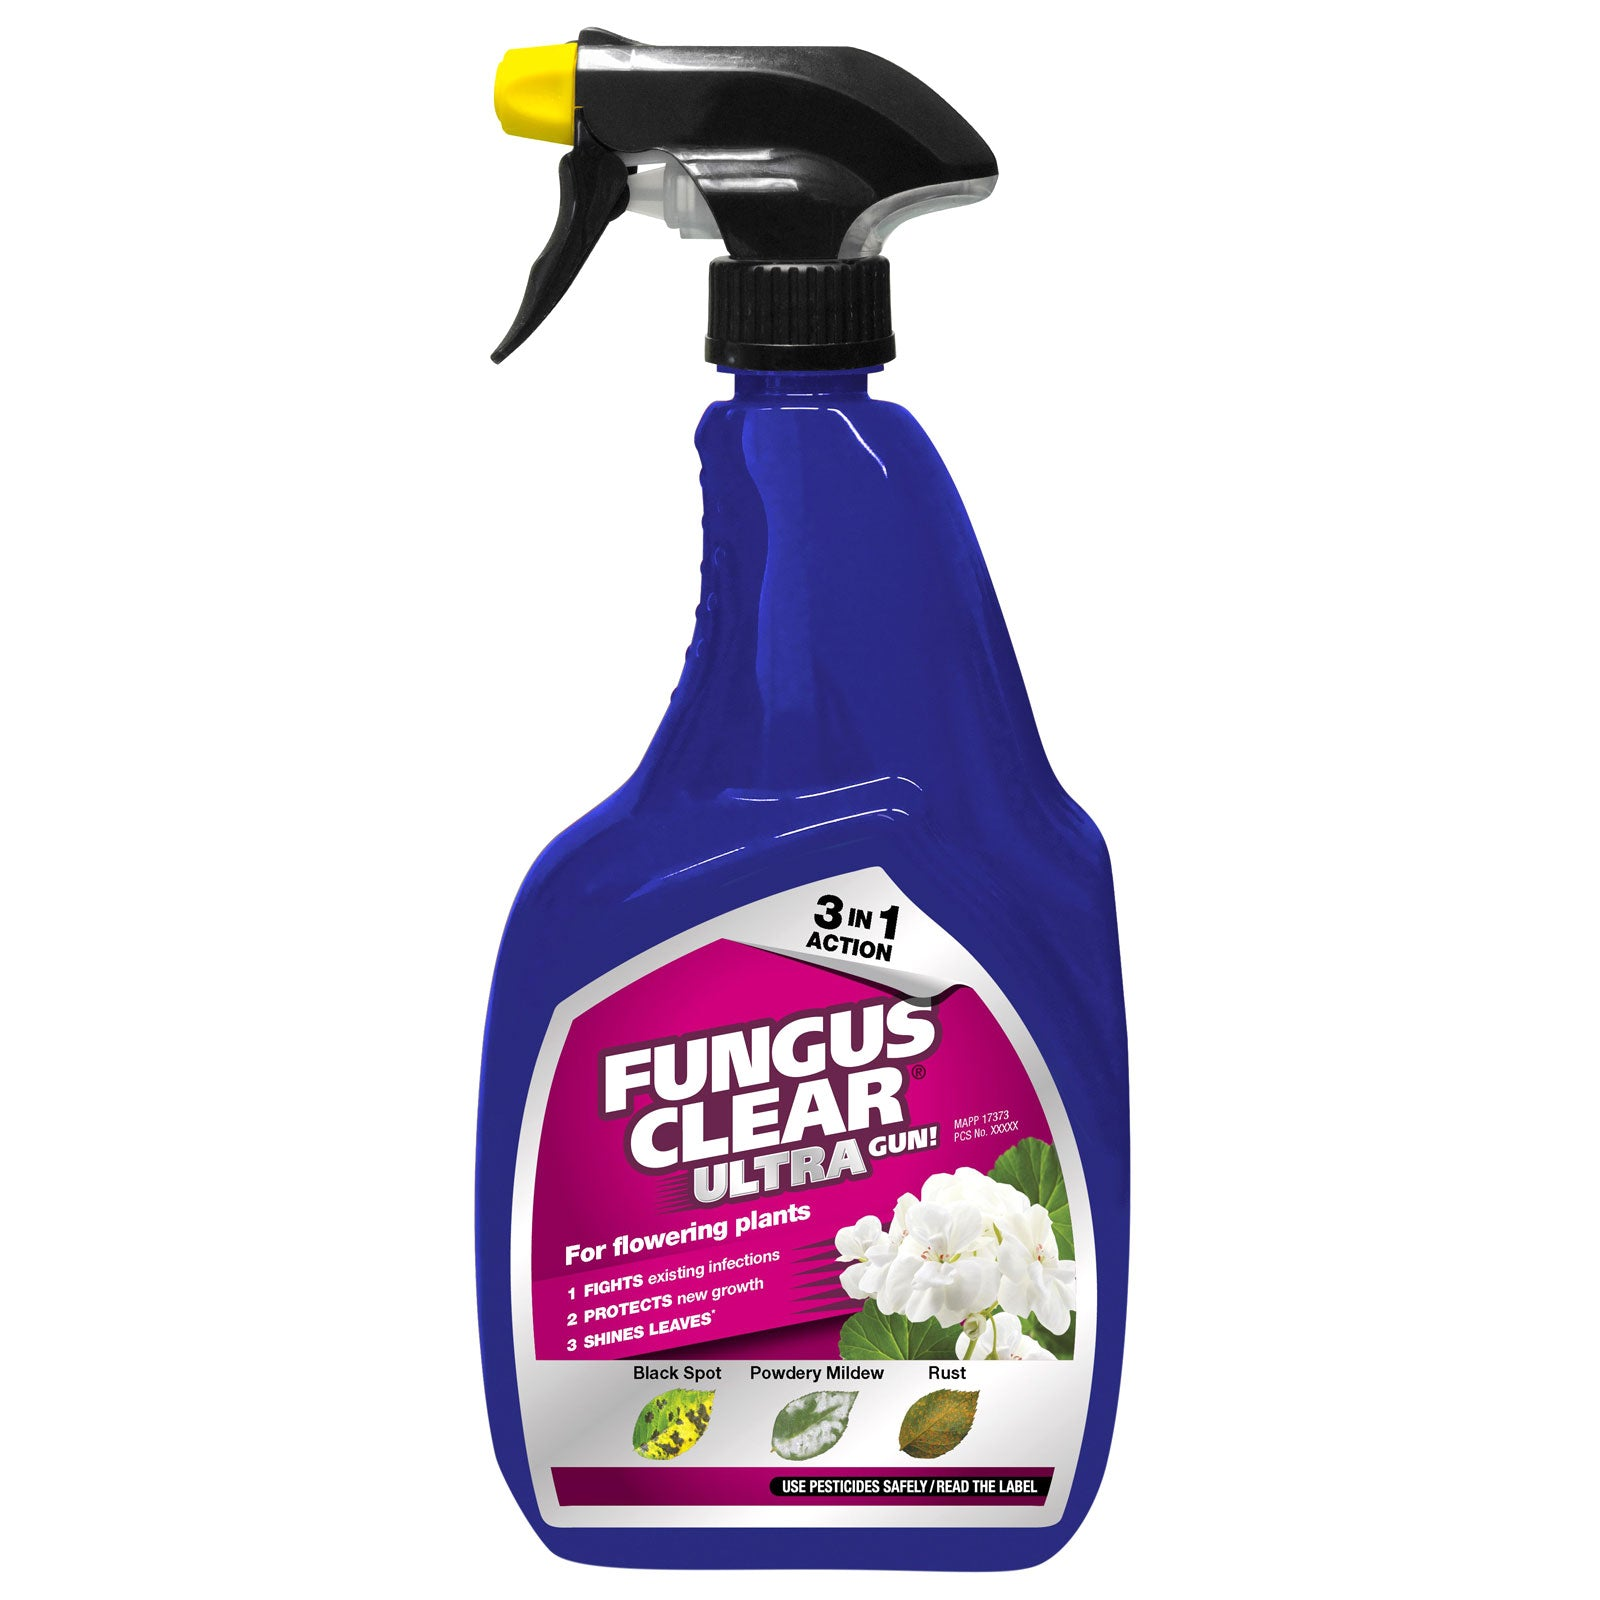 Fungus Clear Ultra Gun 1L Concentrate 3 In 1 Action